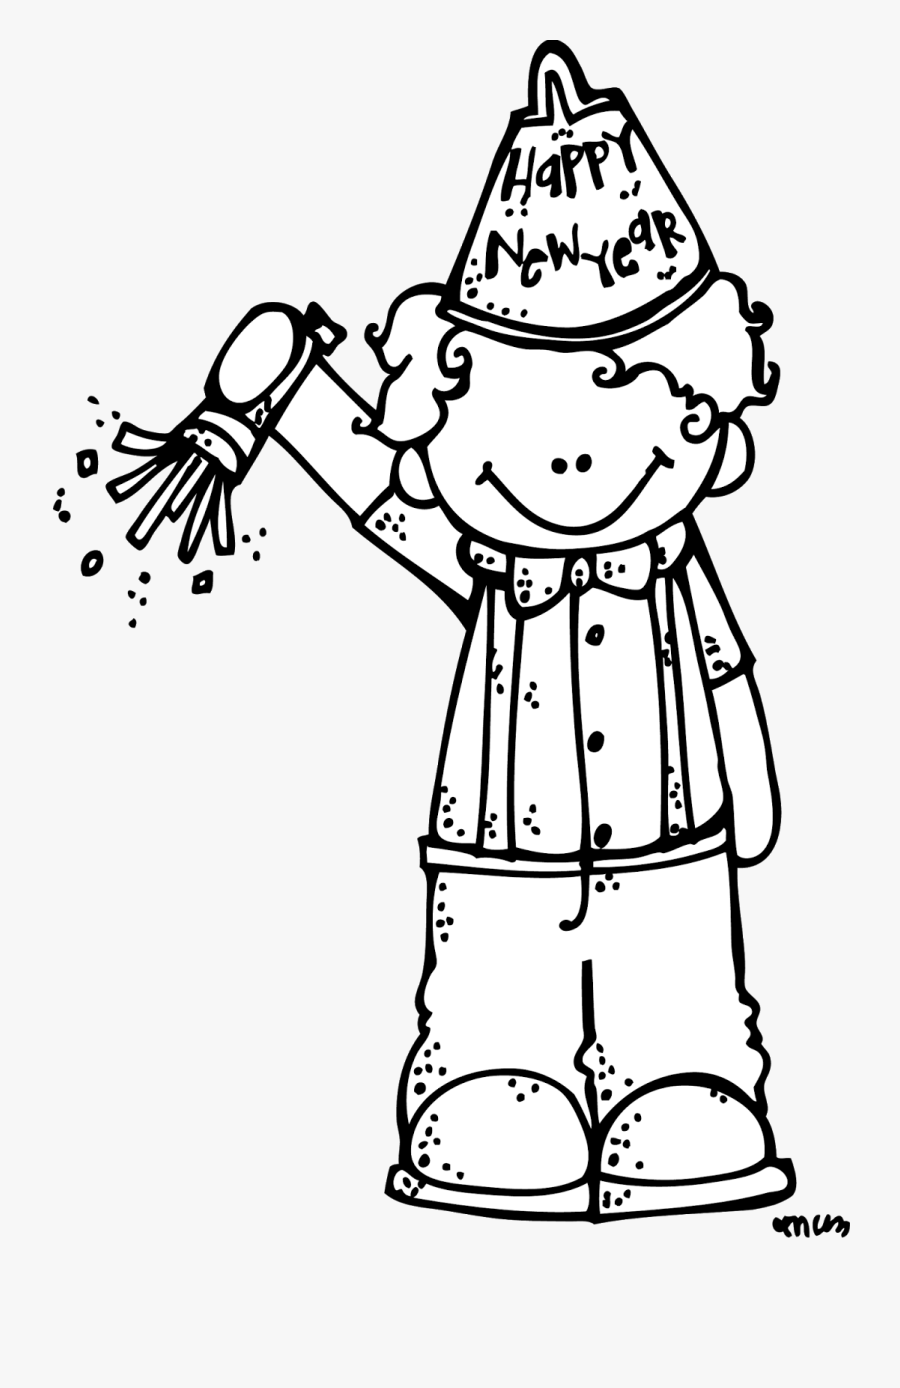 Transparent New Year Clipart Black And White - New Year Interview For Kids, Transparent Clipart